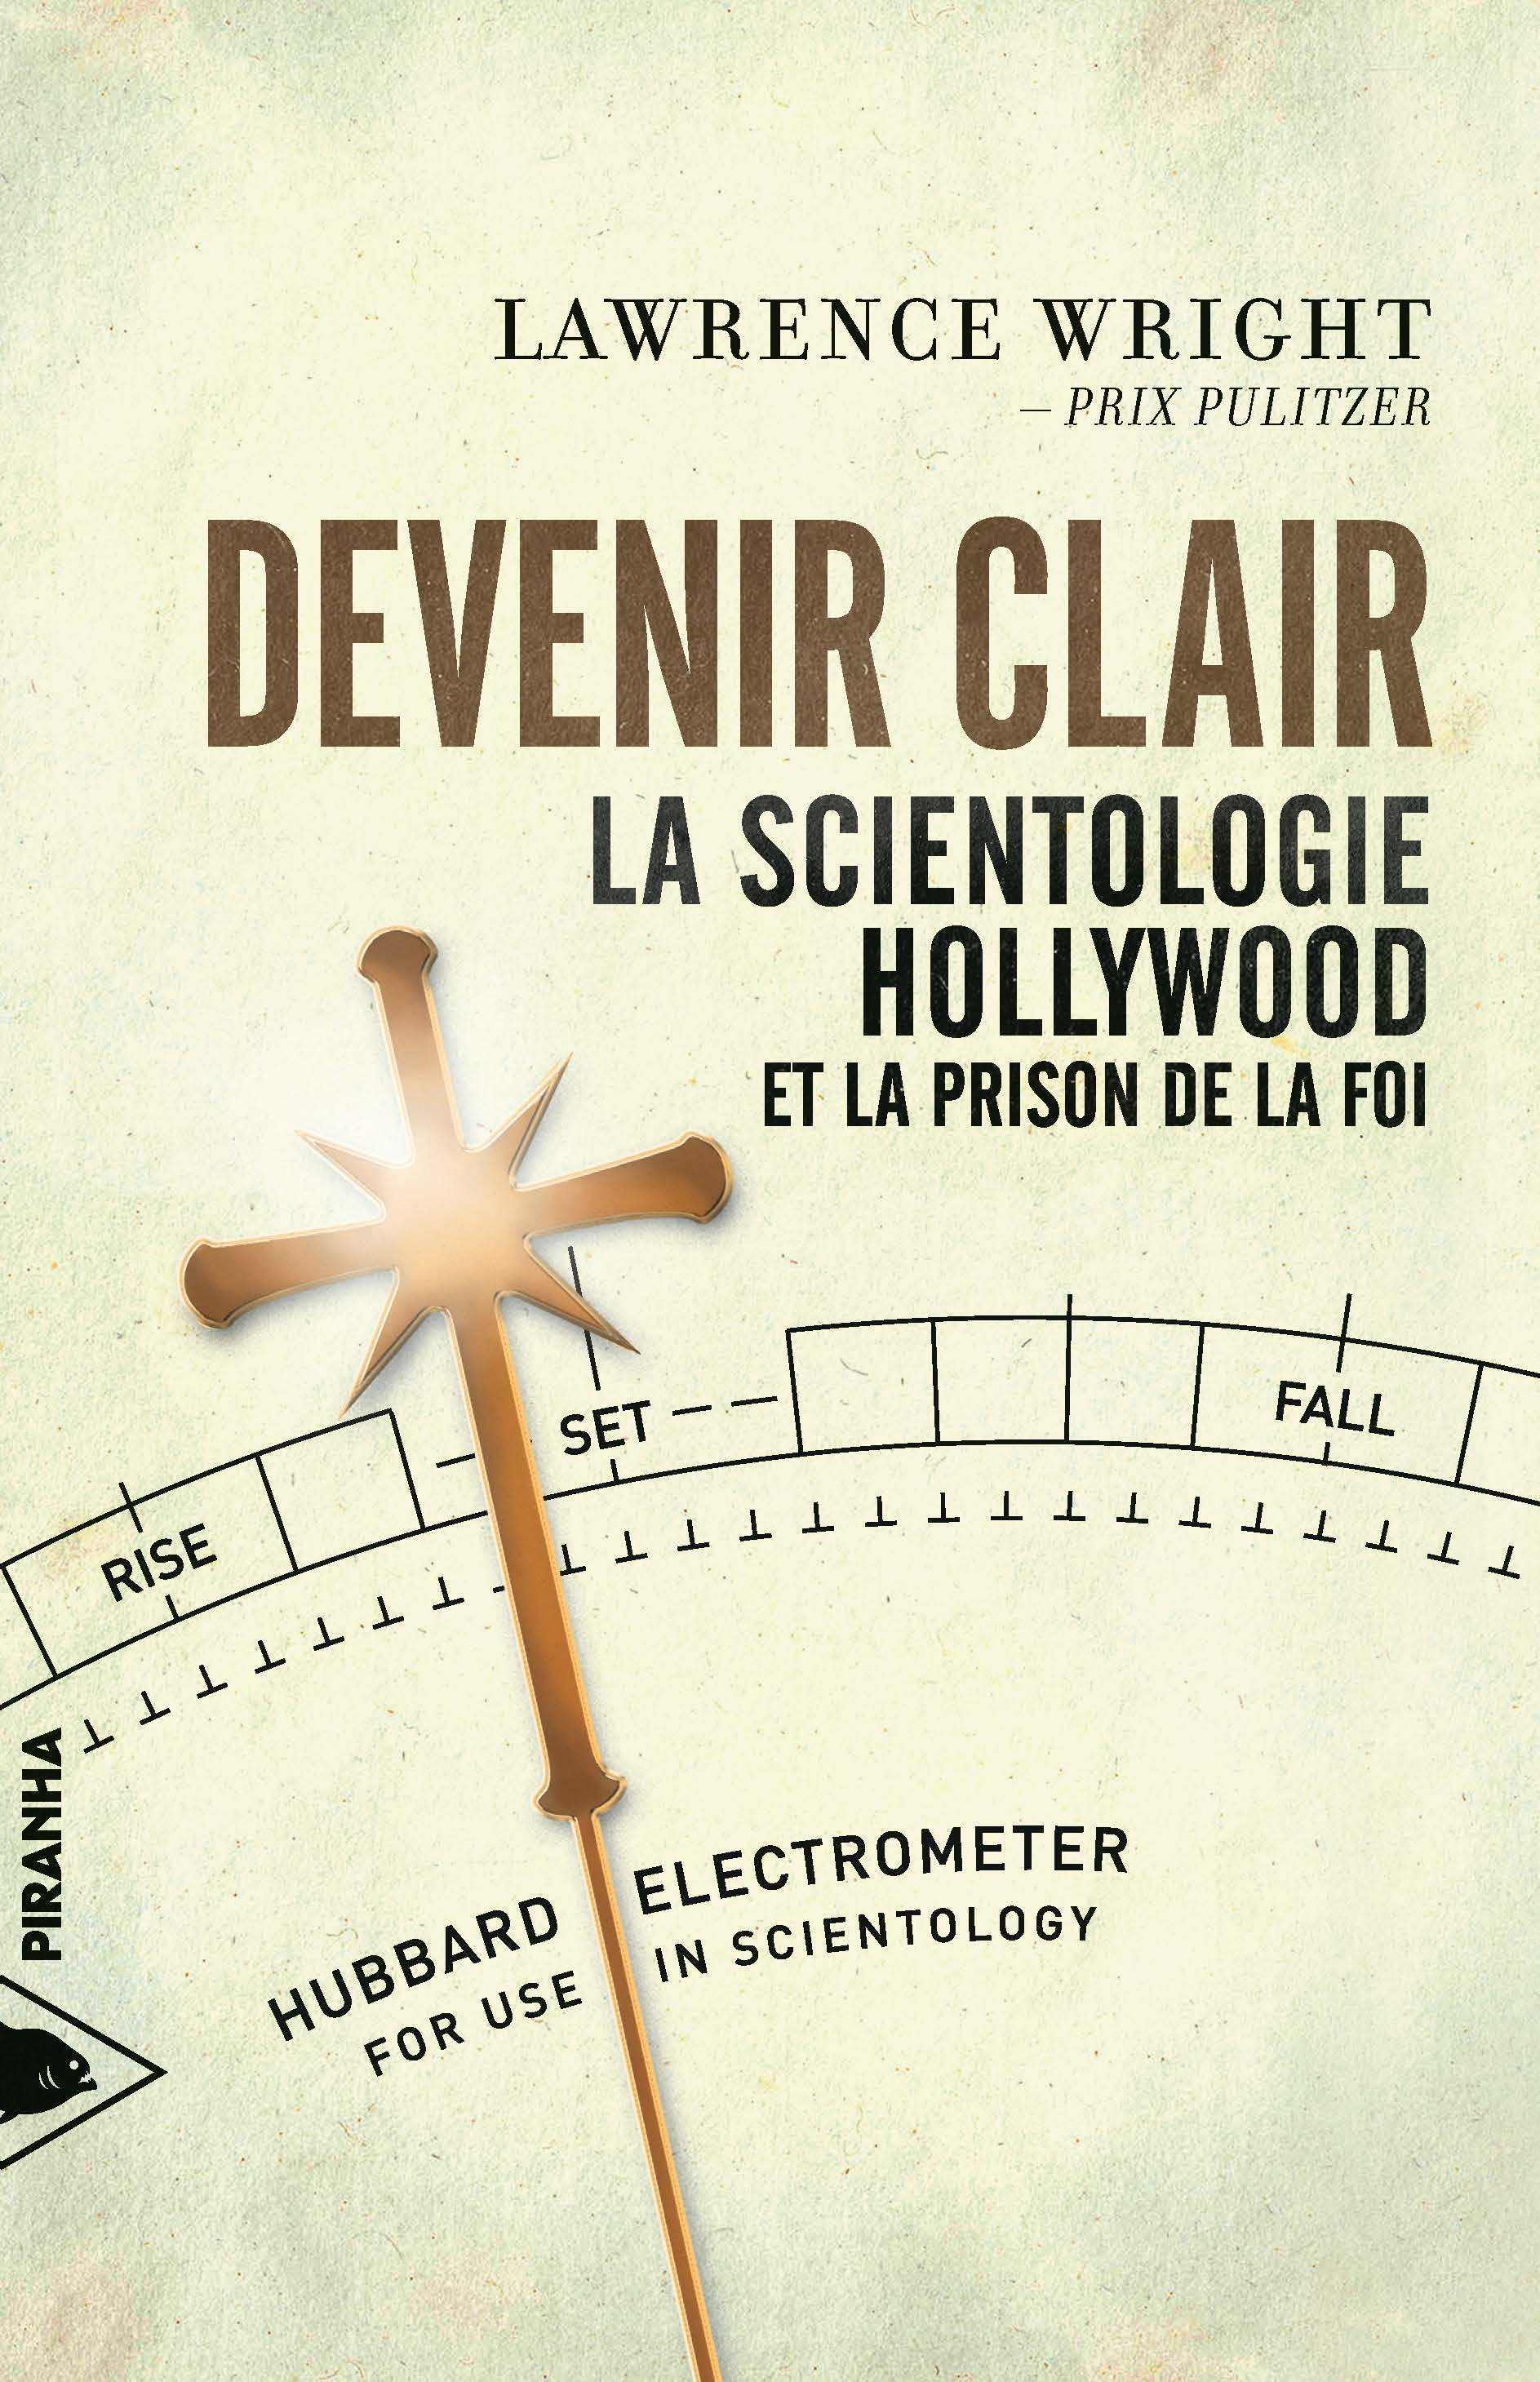 DEVENIR CLAIR - LA SCIENTOLOGIE, HOLLYWOOD...